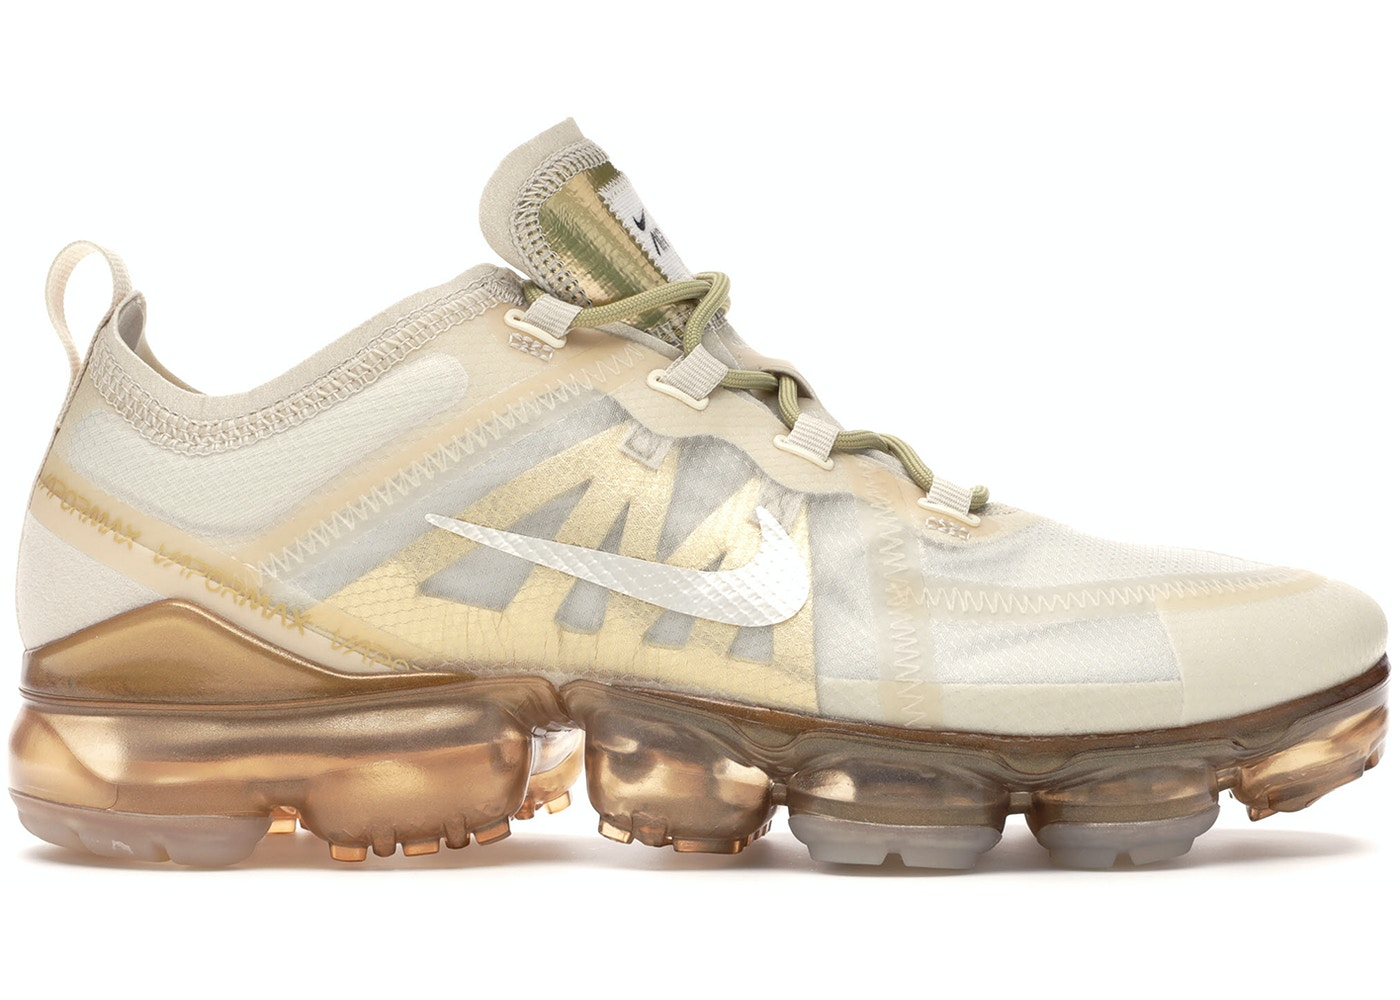 bfc08d2006 Air VaporMax 2019 White Metallic Gold (W) - AR6632-101